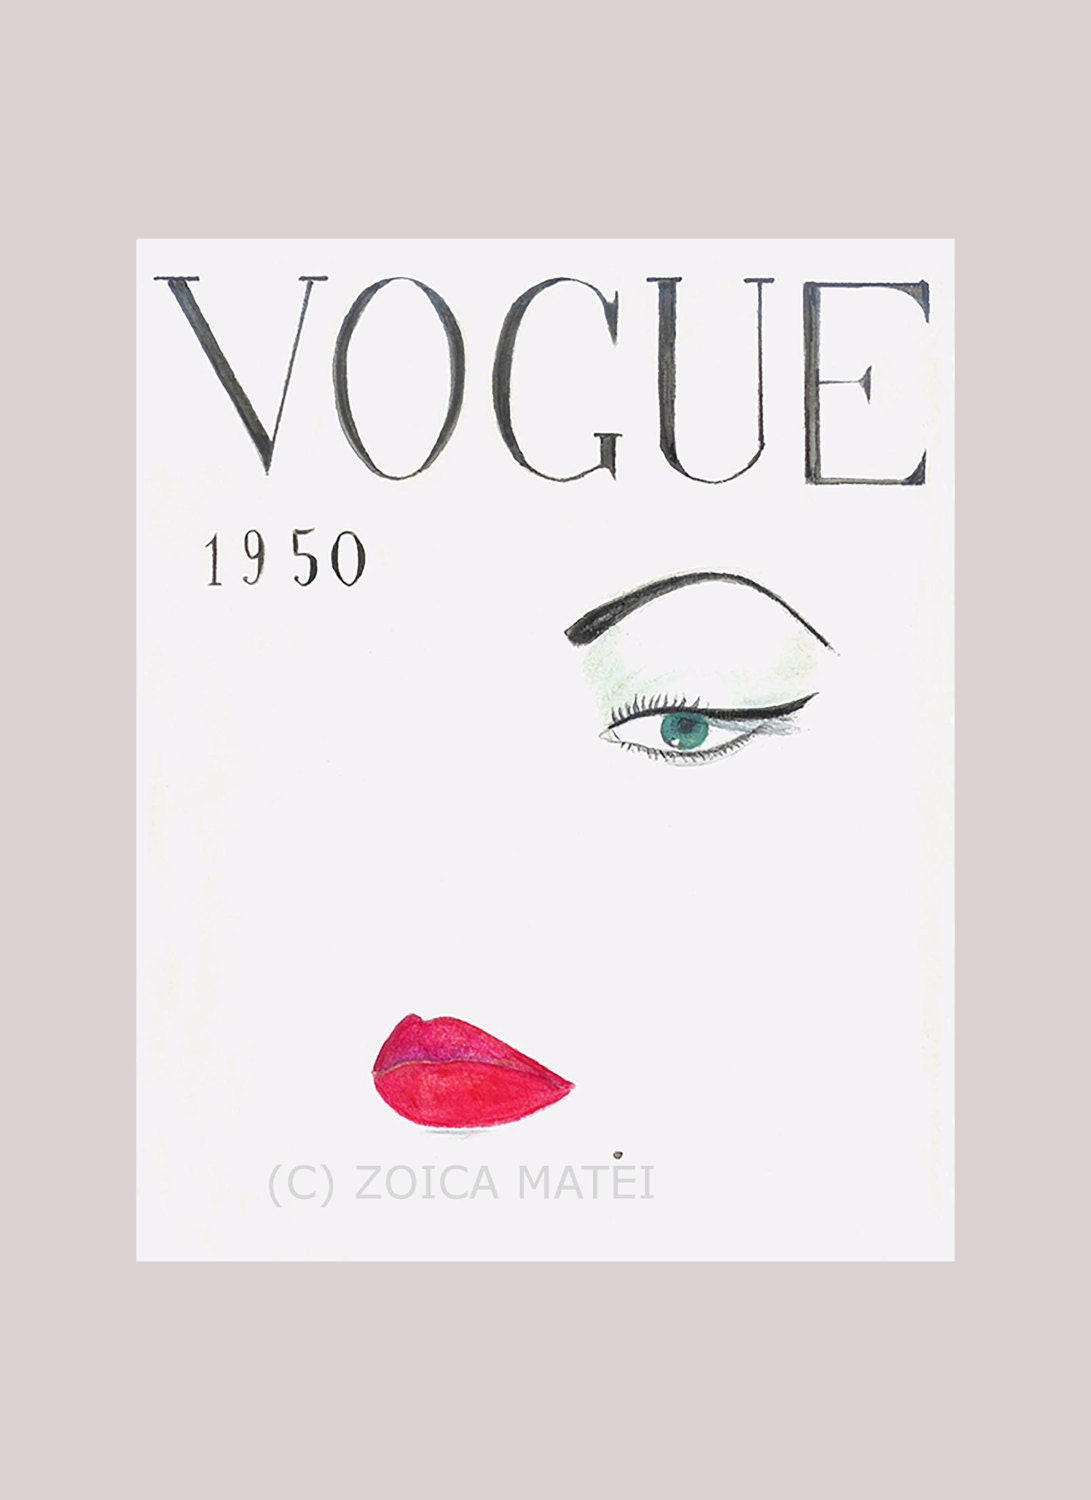 Watercolor vogue face 1950 fashion illustration vogue cover zoom amipublicfo Gallery